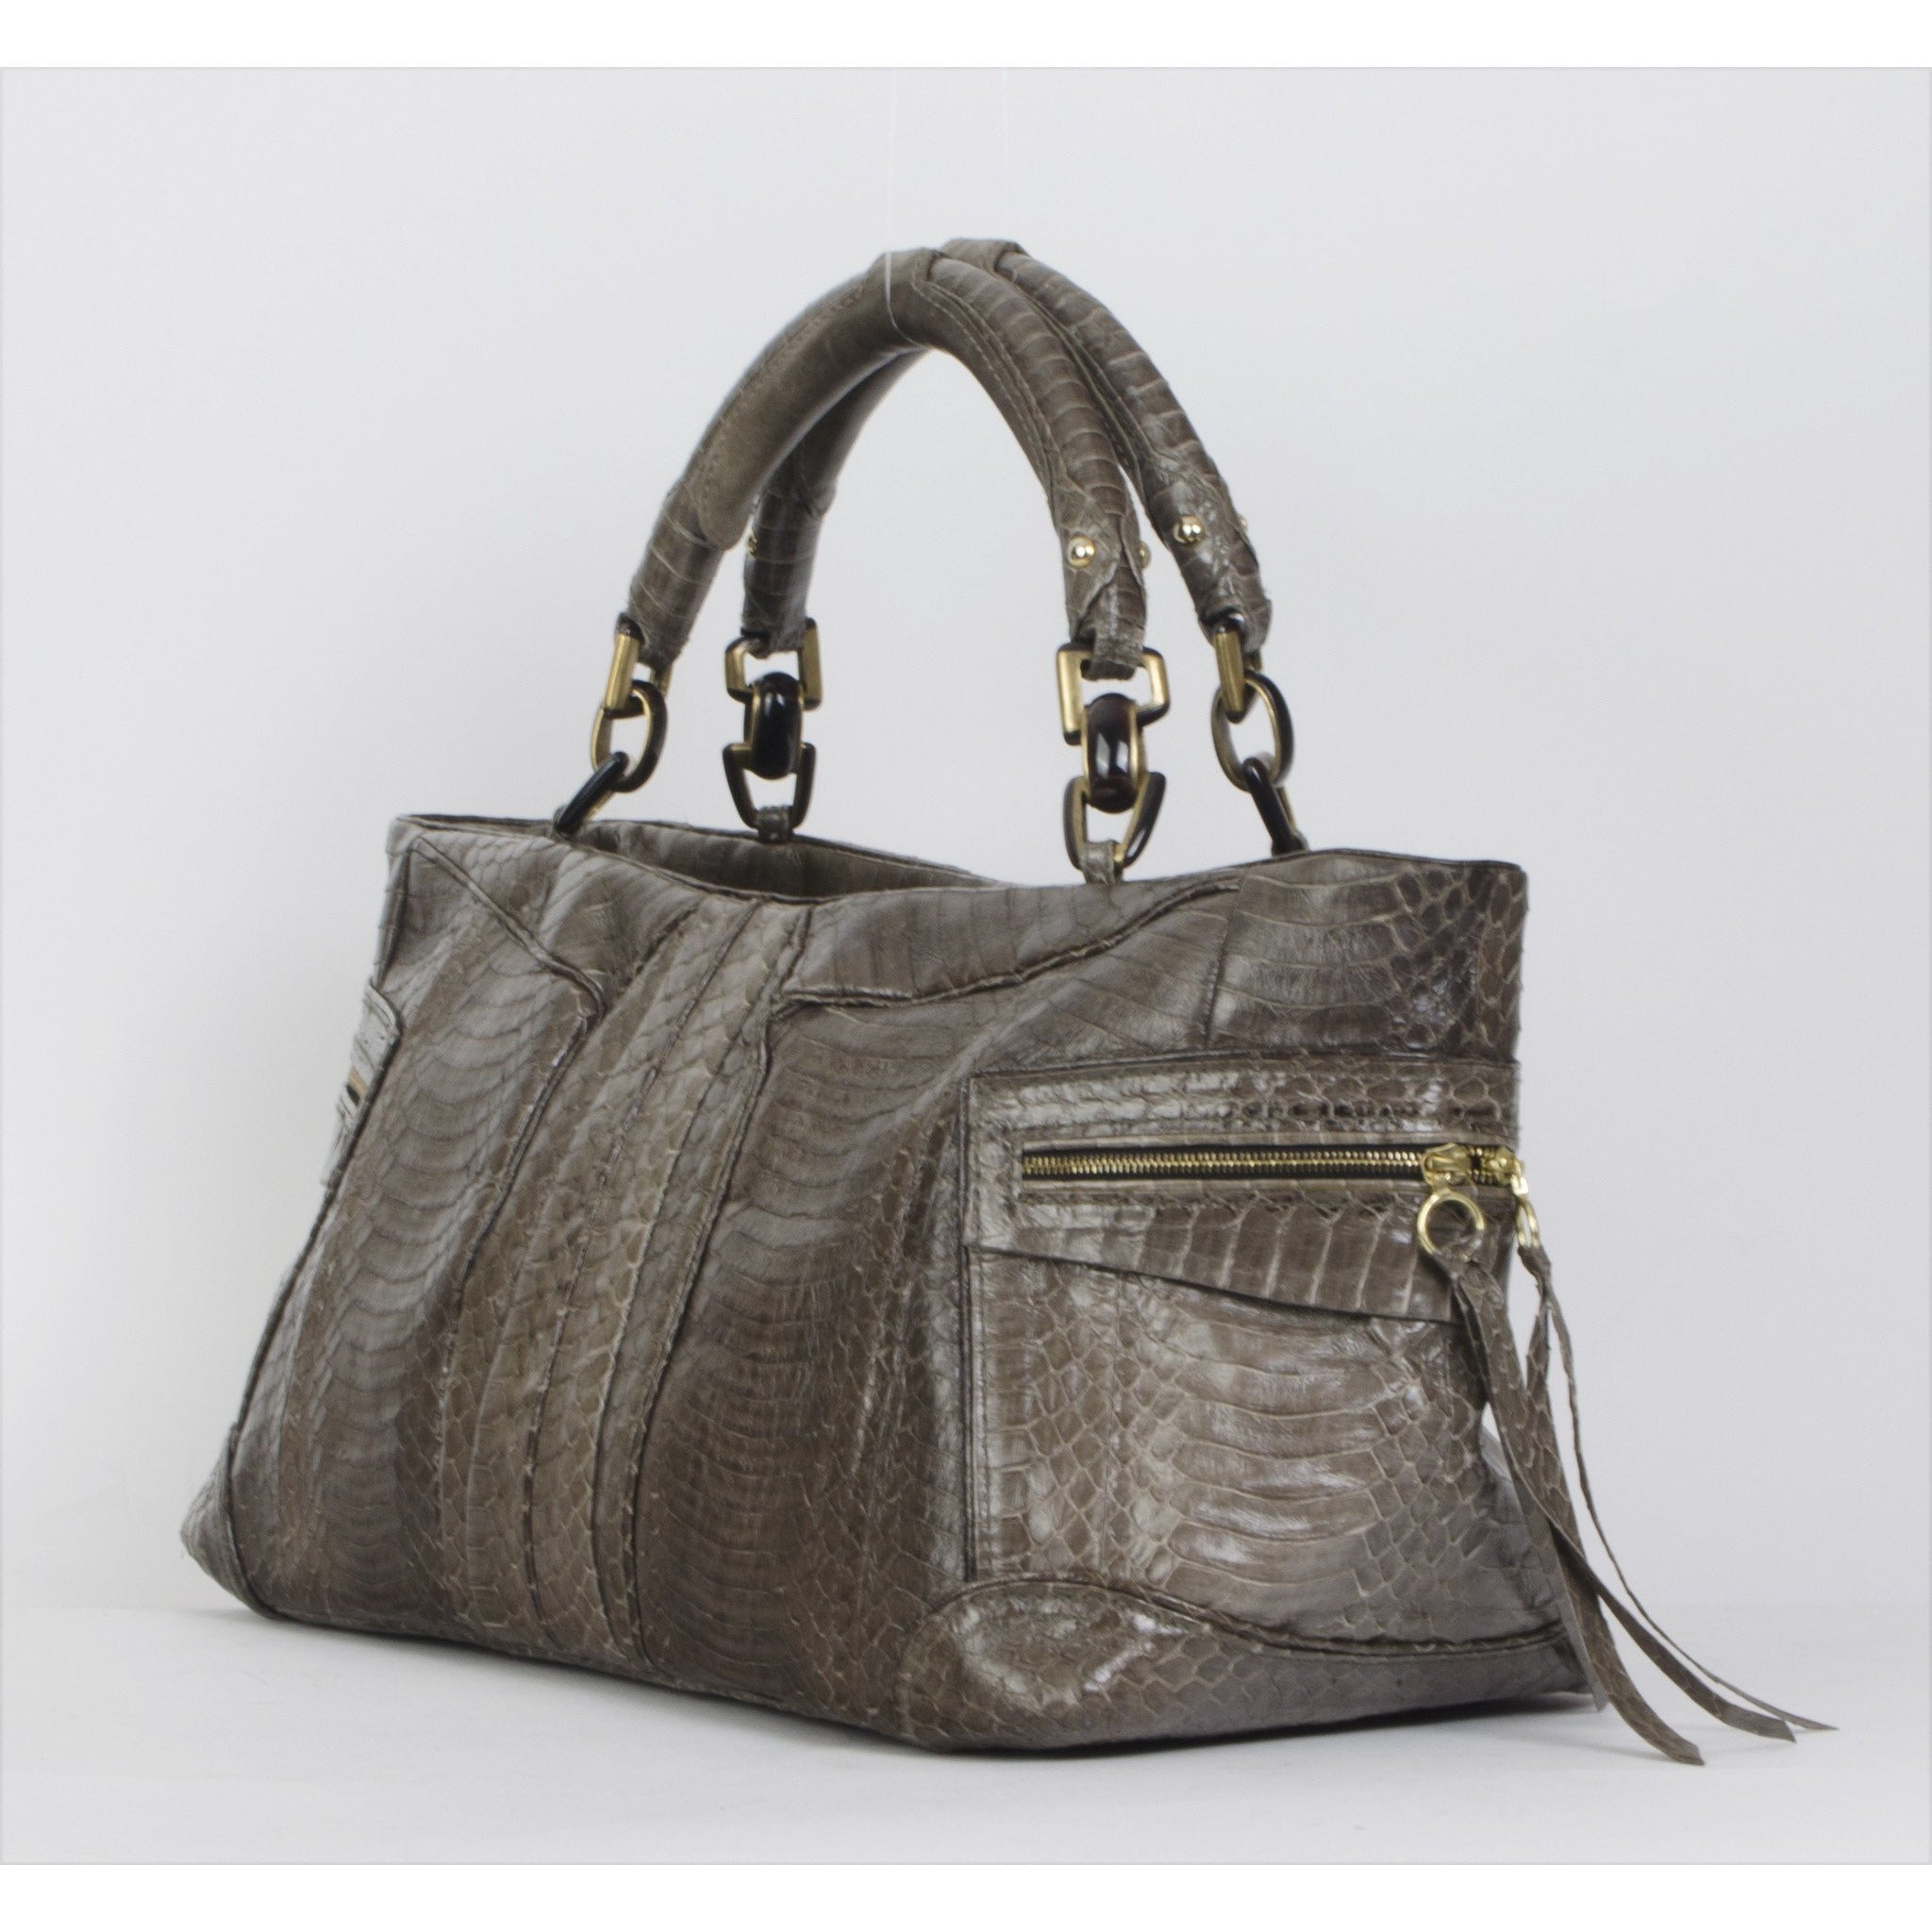 Ry Augousti Python Handbag - aptiques by Authentic PreOwned